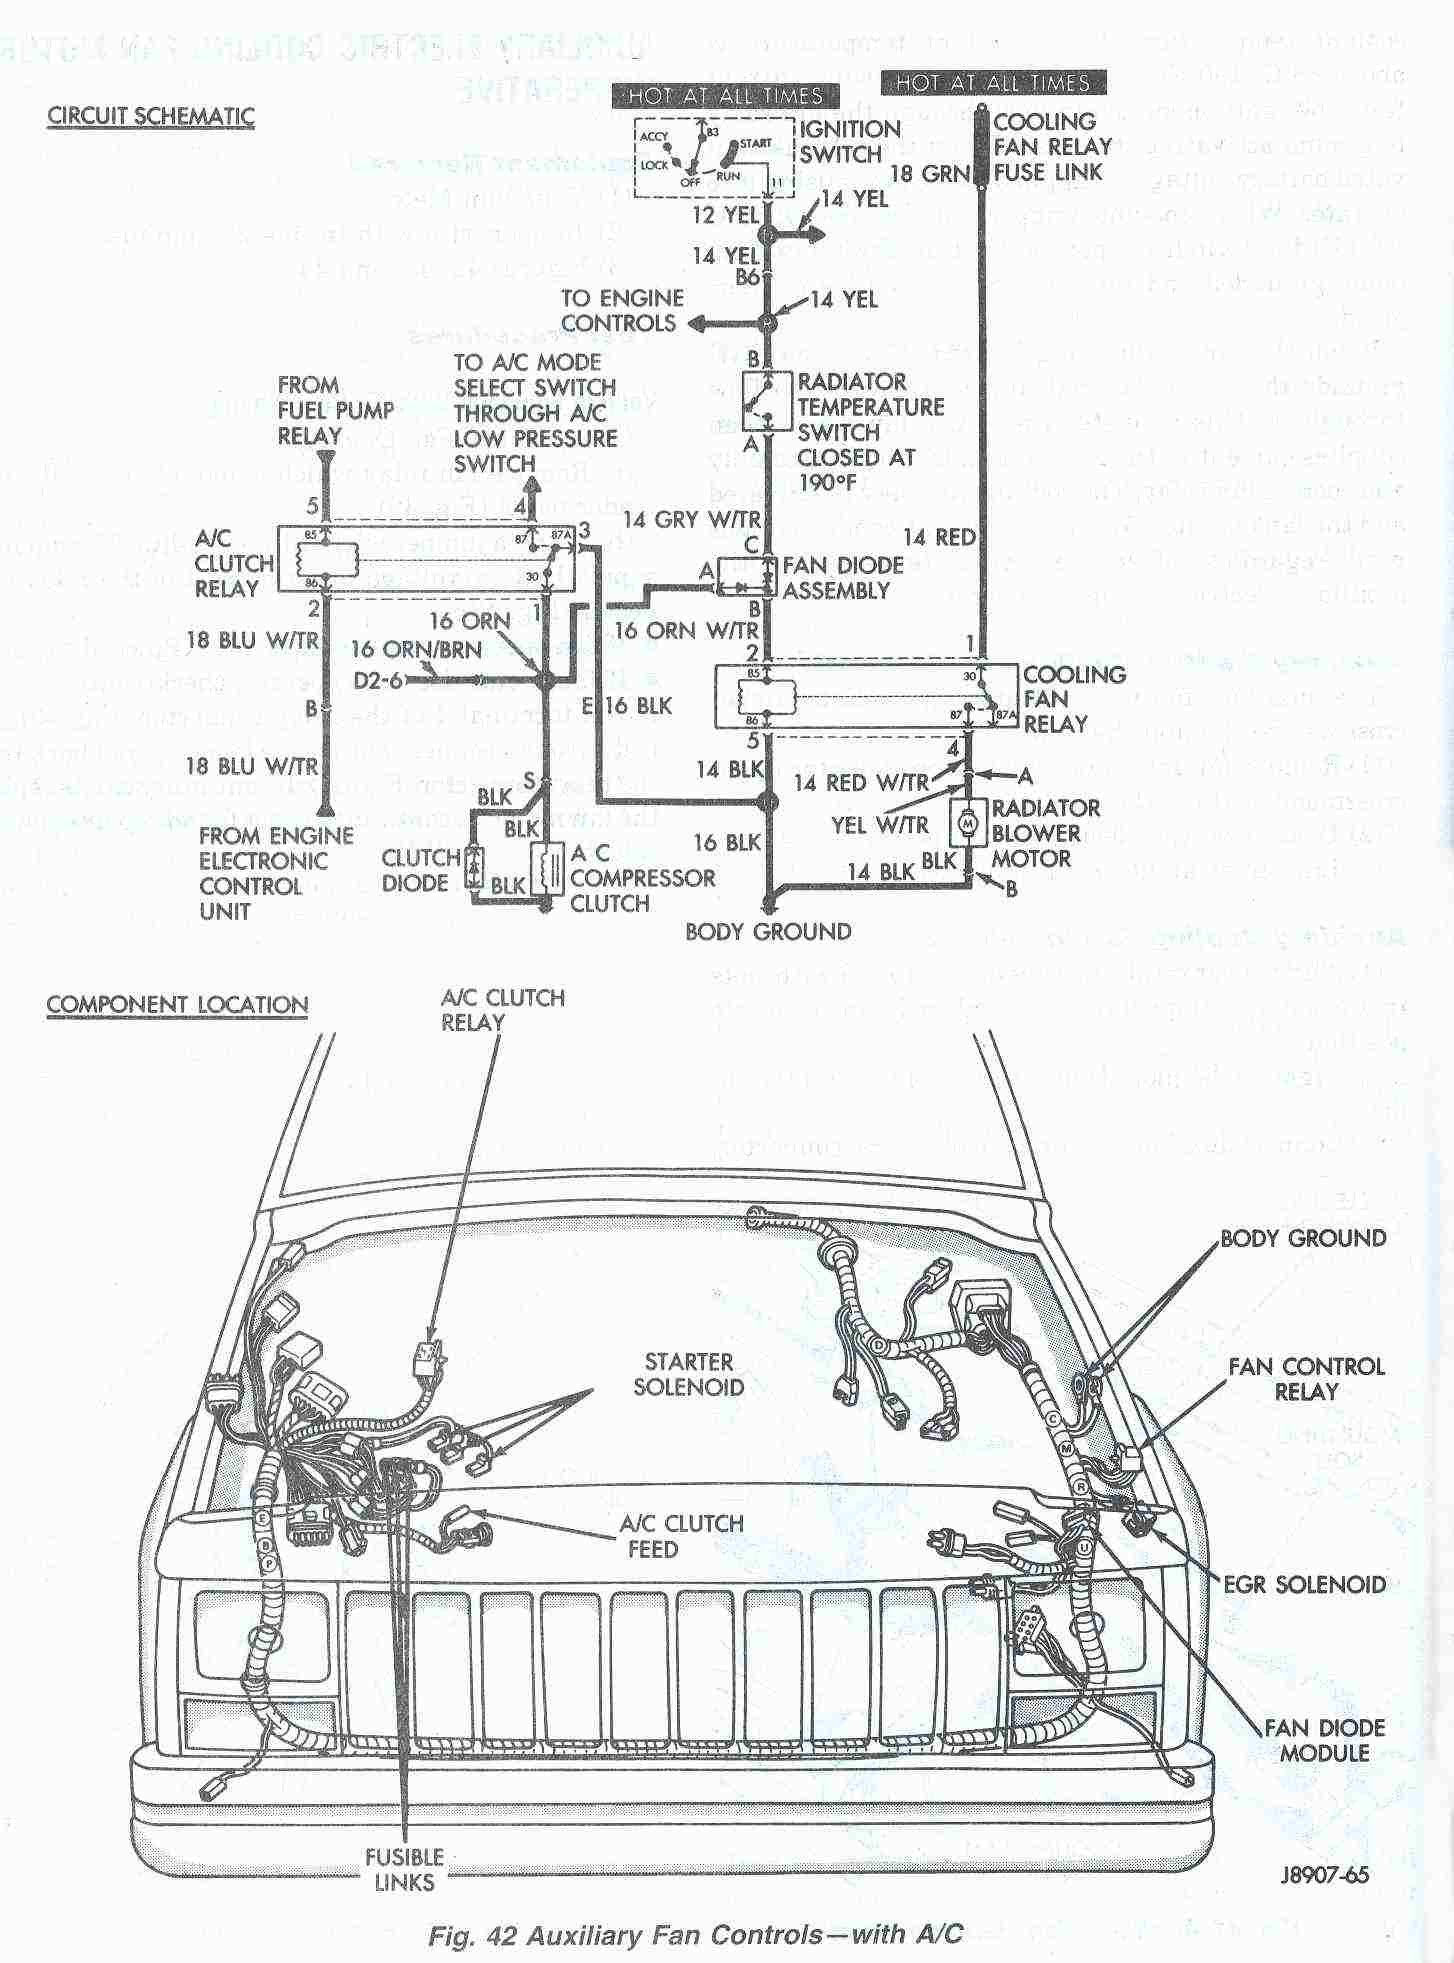 2004 Jeep Grand Cherokee Engine Diagram Wiring Diagram for Ac Unit thermostat Along with Jeep Cherokee